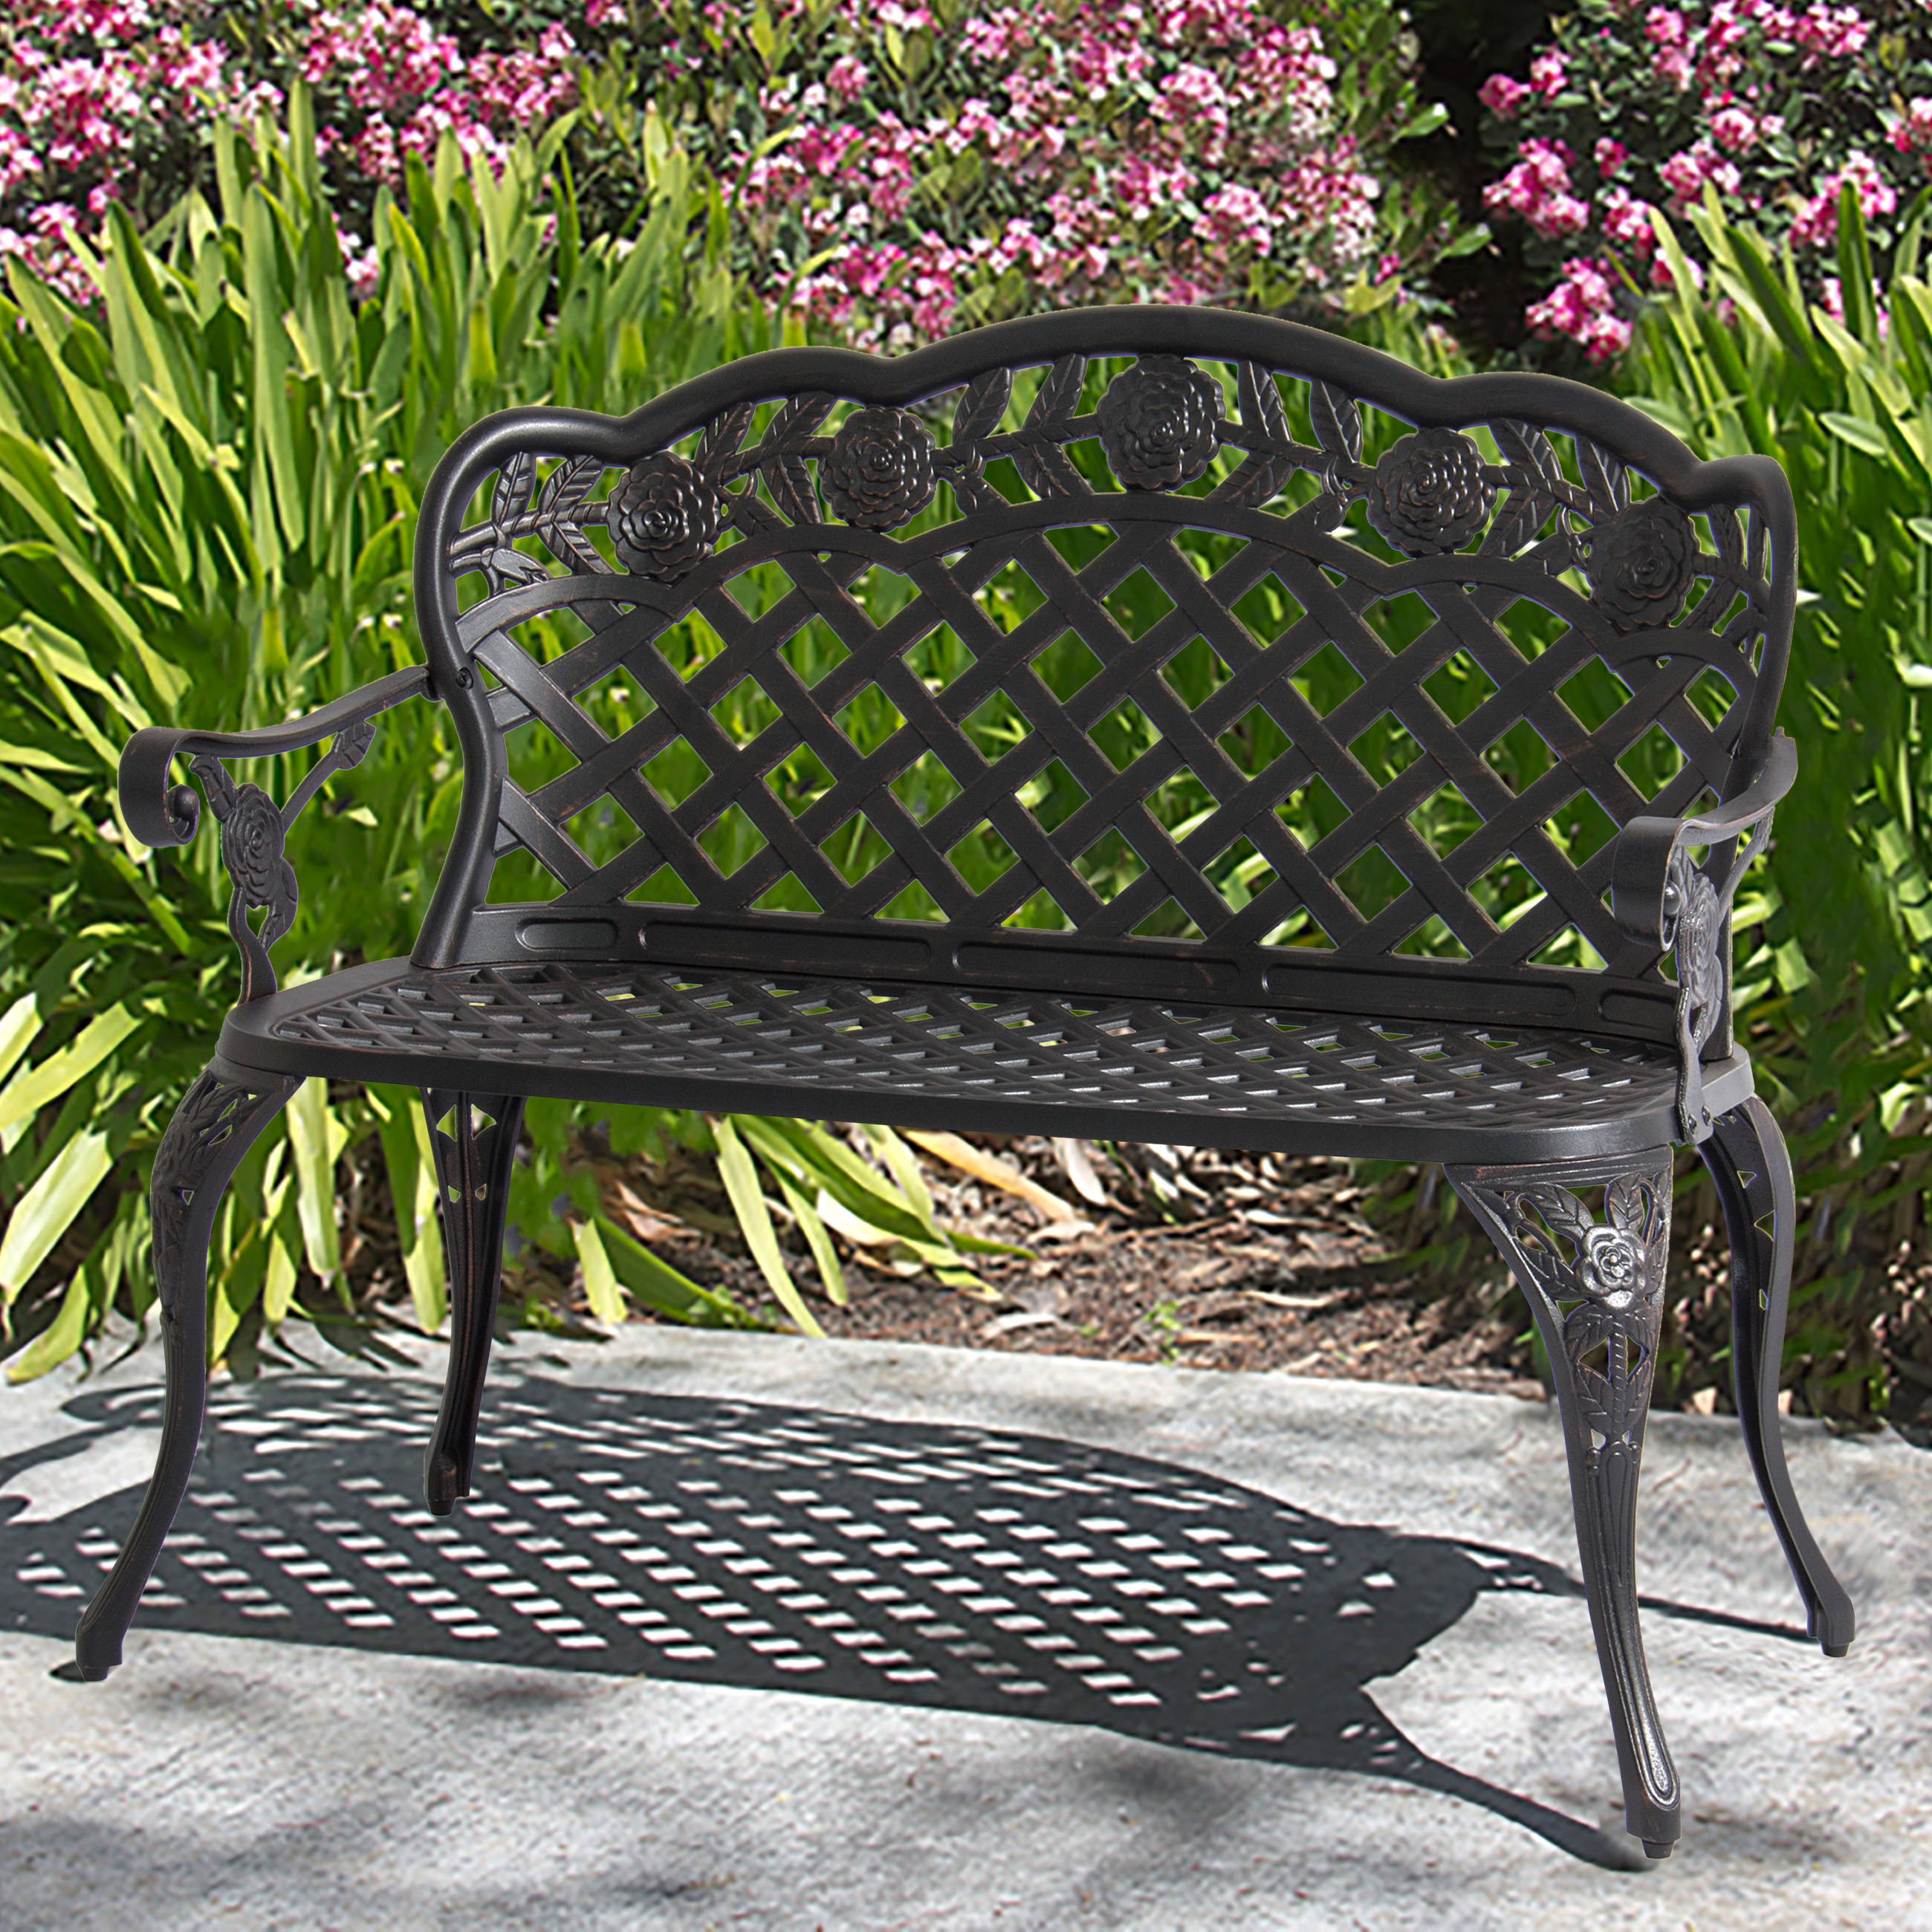 Best Choice Products Patio Garden Bench Cast Aluminum Outdoor Garden Yard  Solid Construction New